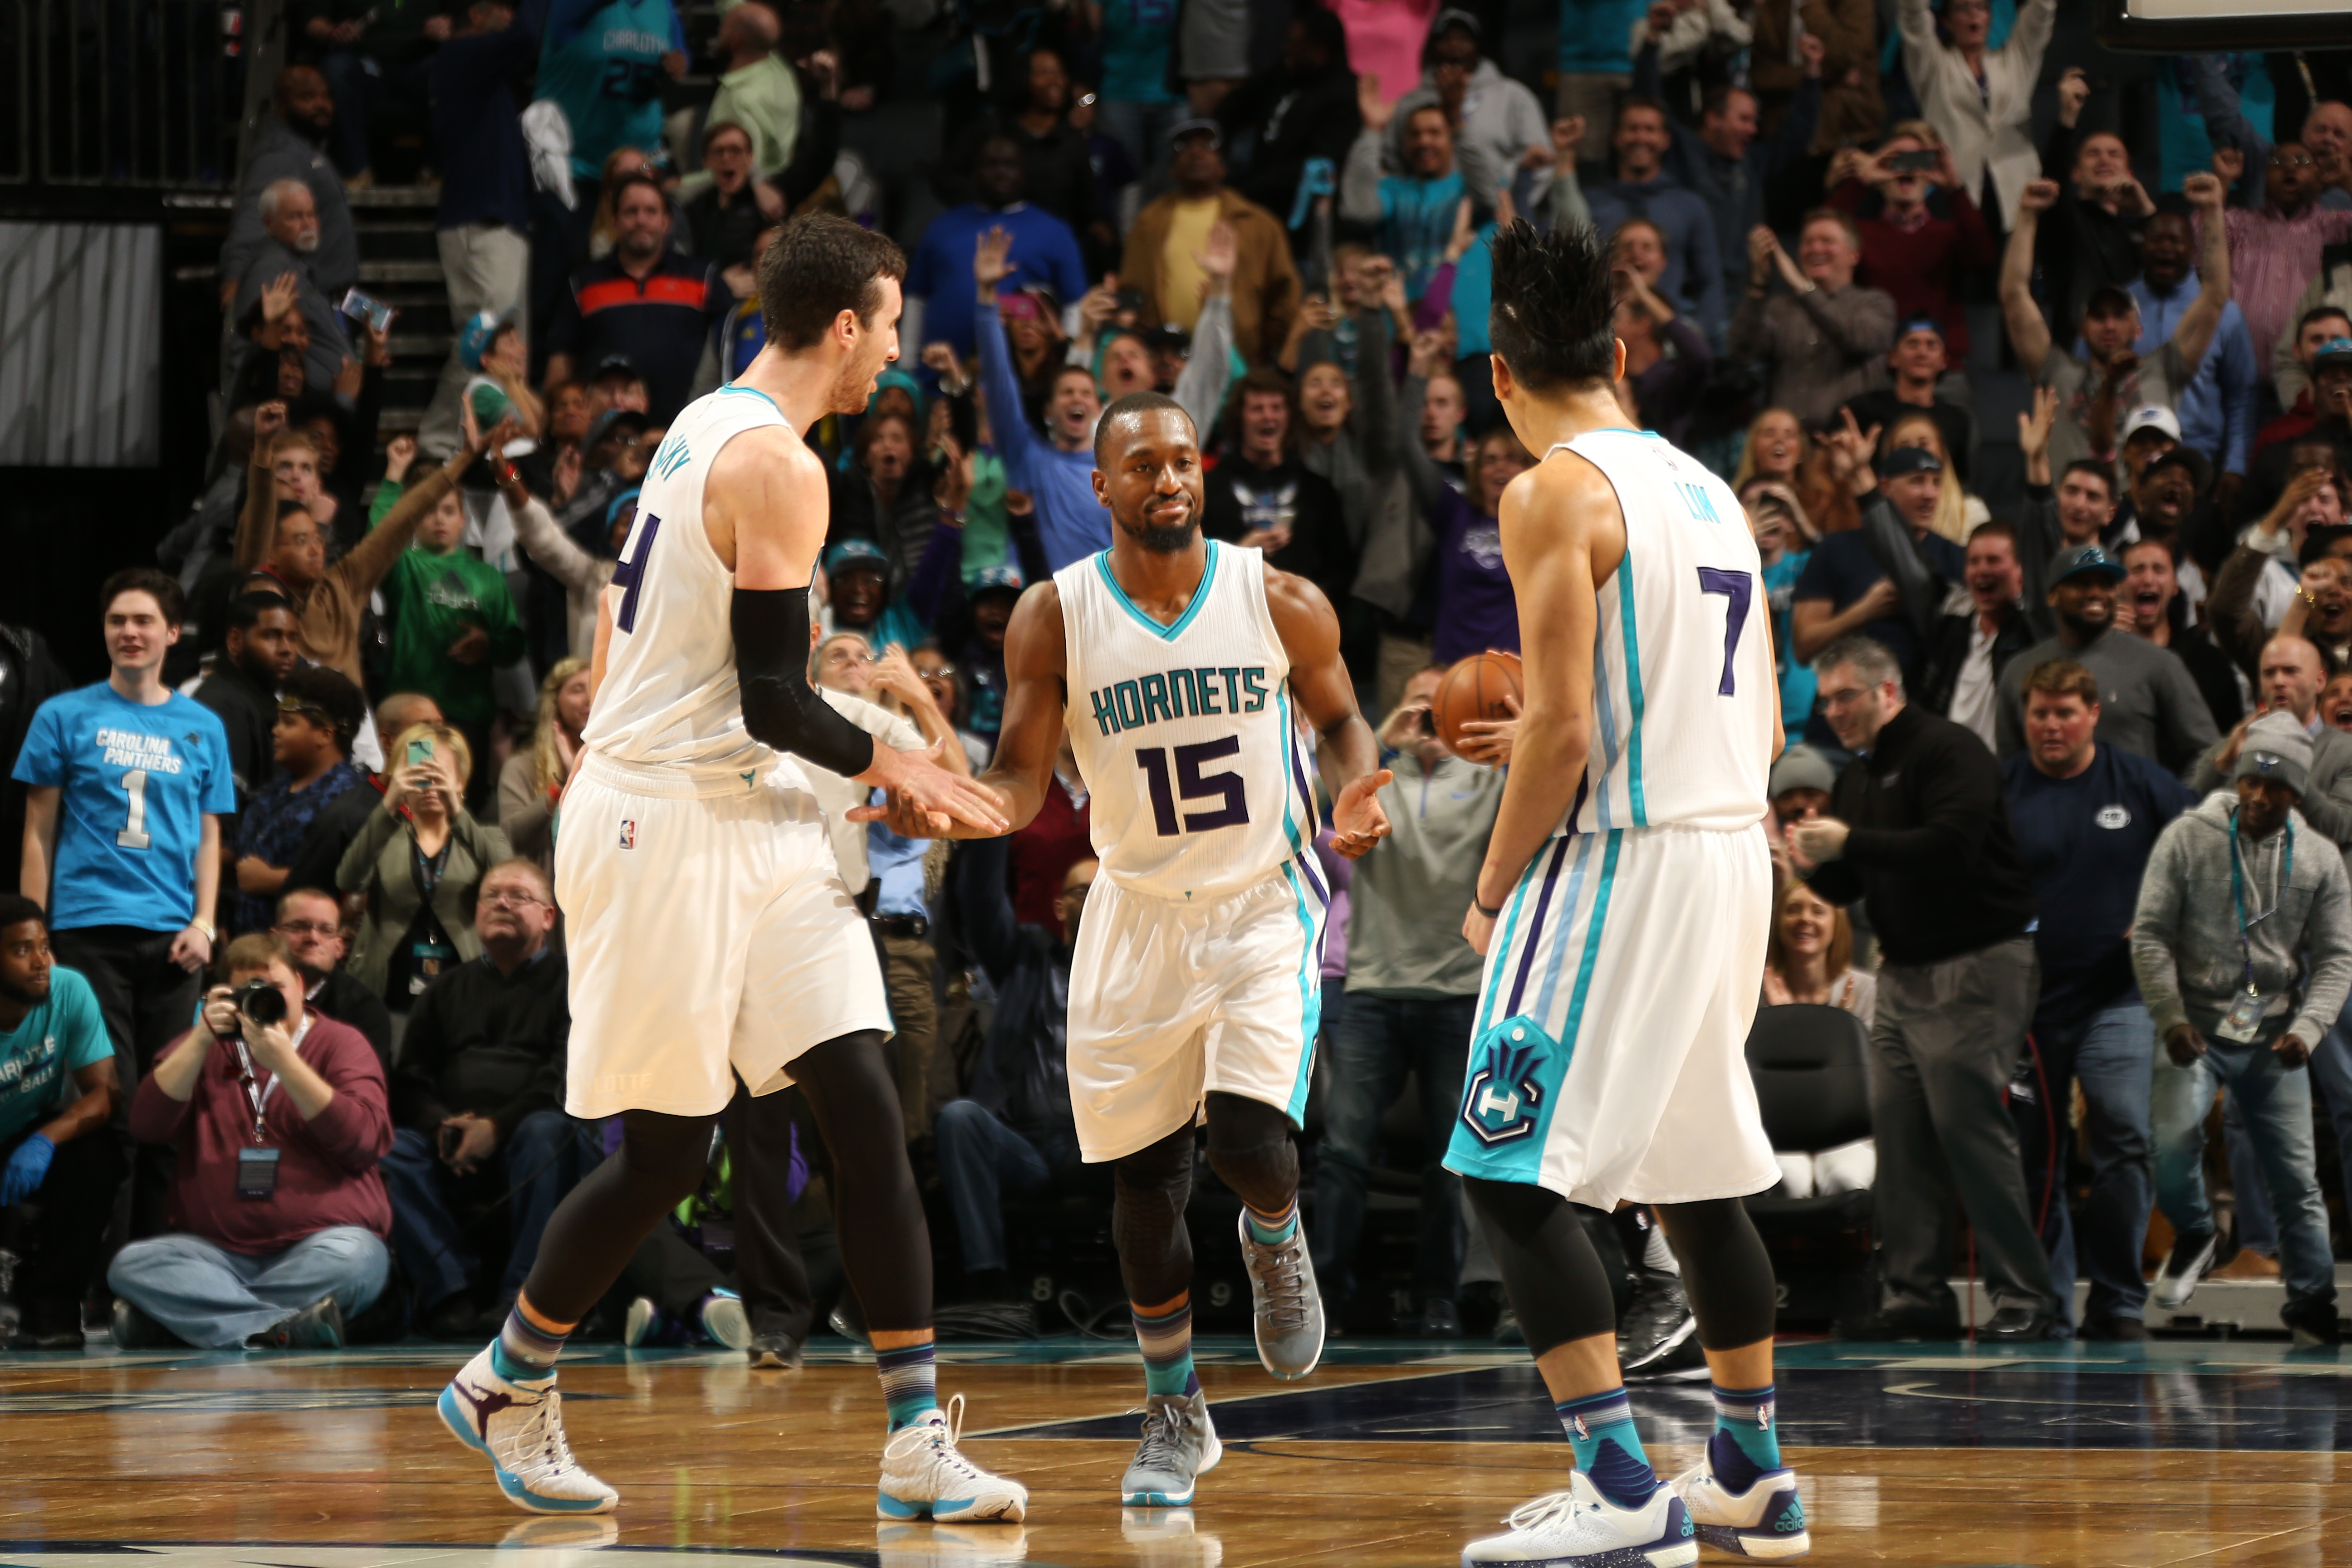 CHARLOTTE, NC - NOVEMBER 23: Kemba Walker #15 of the Charlotte Hornets high fives his teammates during the game against the Sacramento Kings on November 23, 2015 at Time Warner Cable Arena in Charlotte, North Carolina. (Photo by Kent Smith/NBAE via Getty